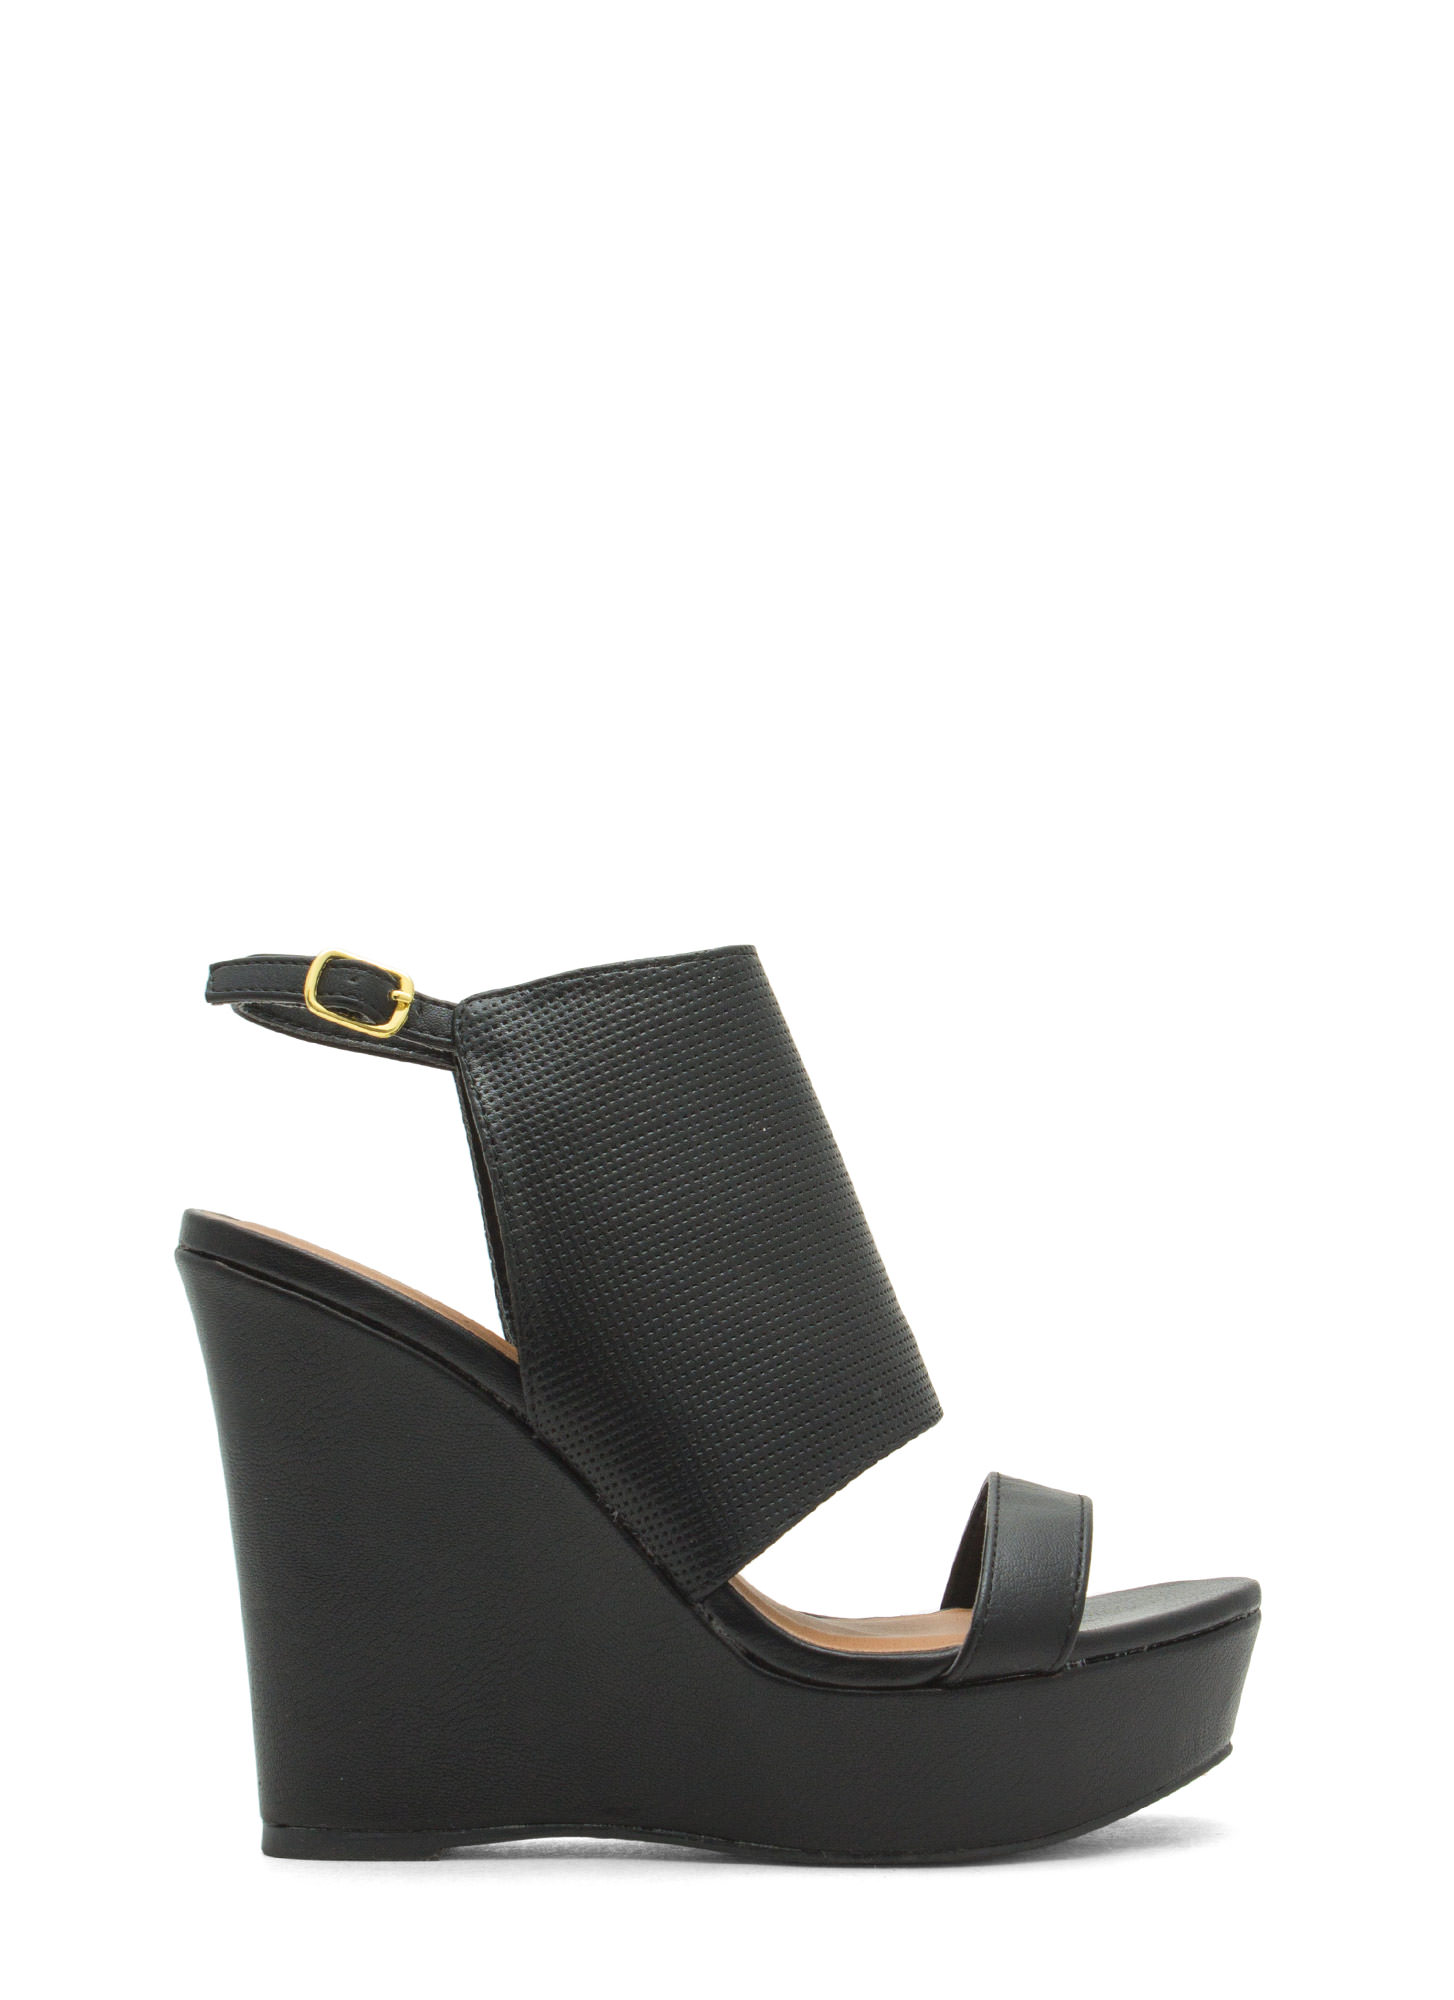 Shield Of Approval Textured Wedges BLACK